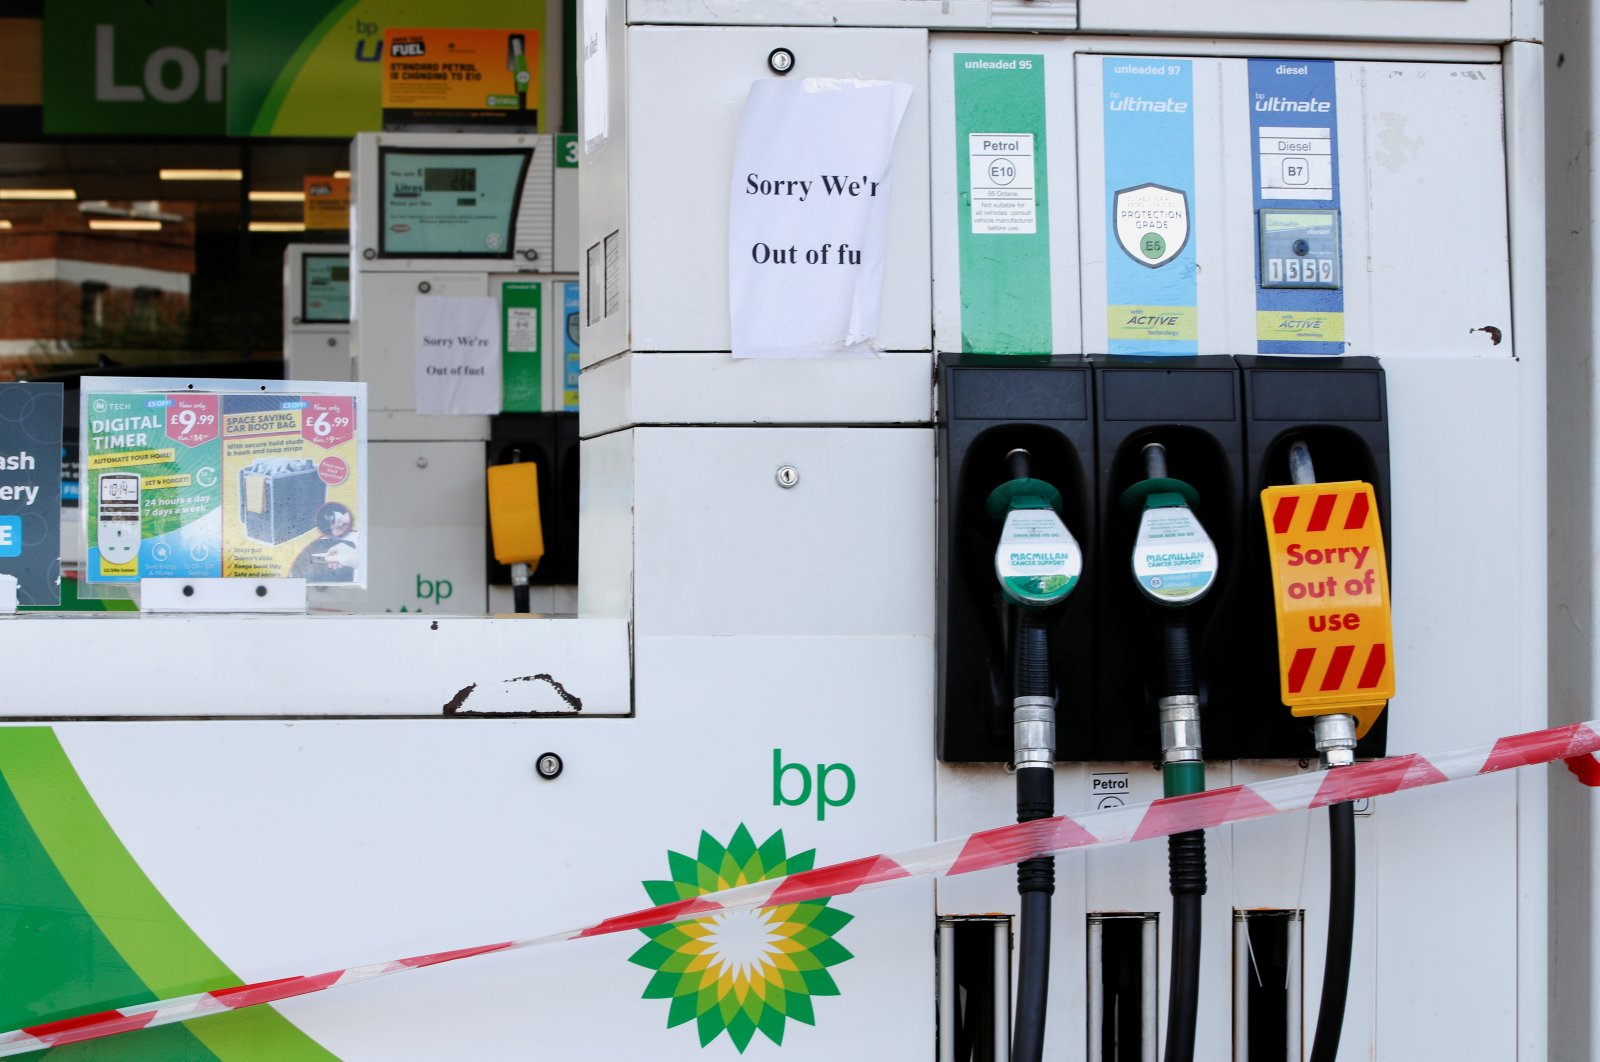 A BP gas station that has ran out of fuel is seen in London, Britain, Sept. 26, 2021. (Reuters Photo)